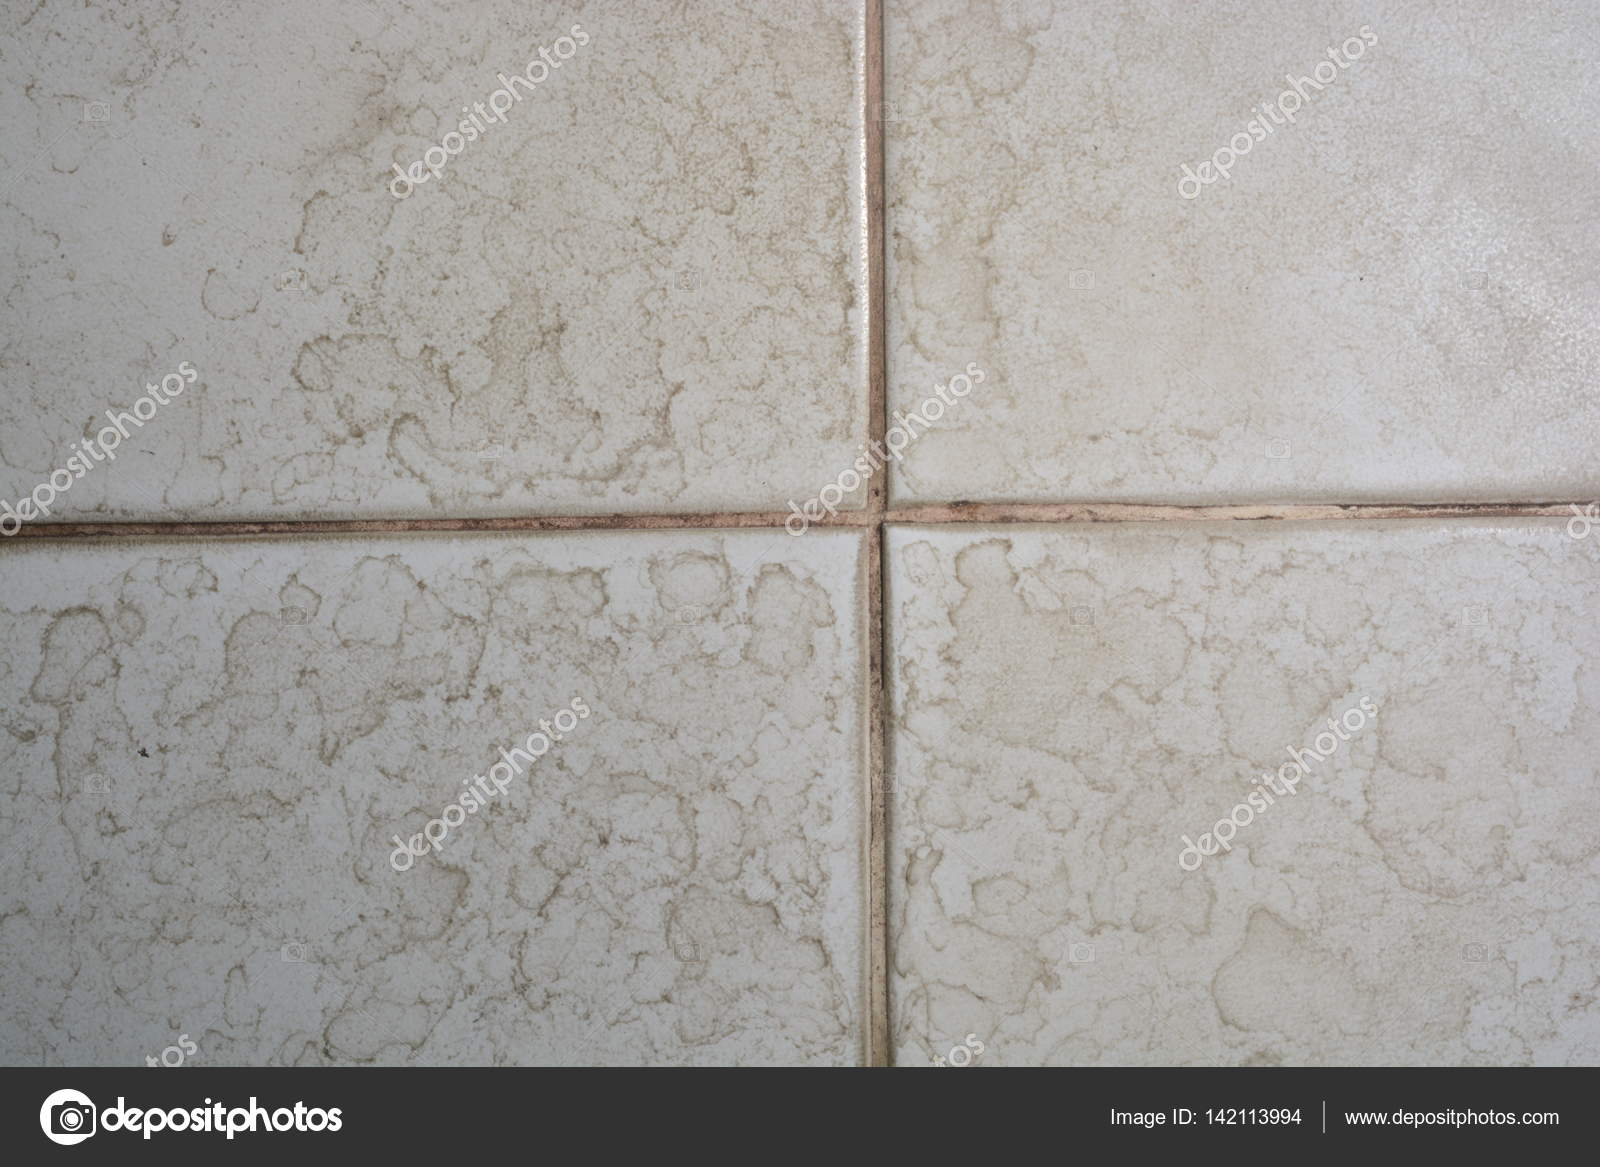 Close Up Of Bathroom Floor Tile Texture With Water Stain Spot